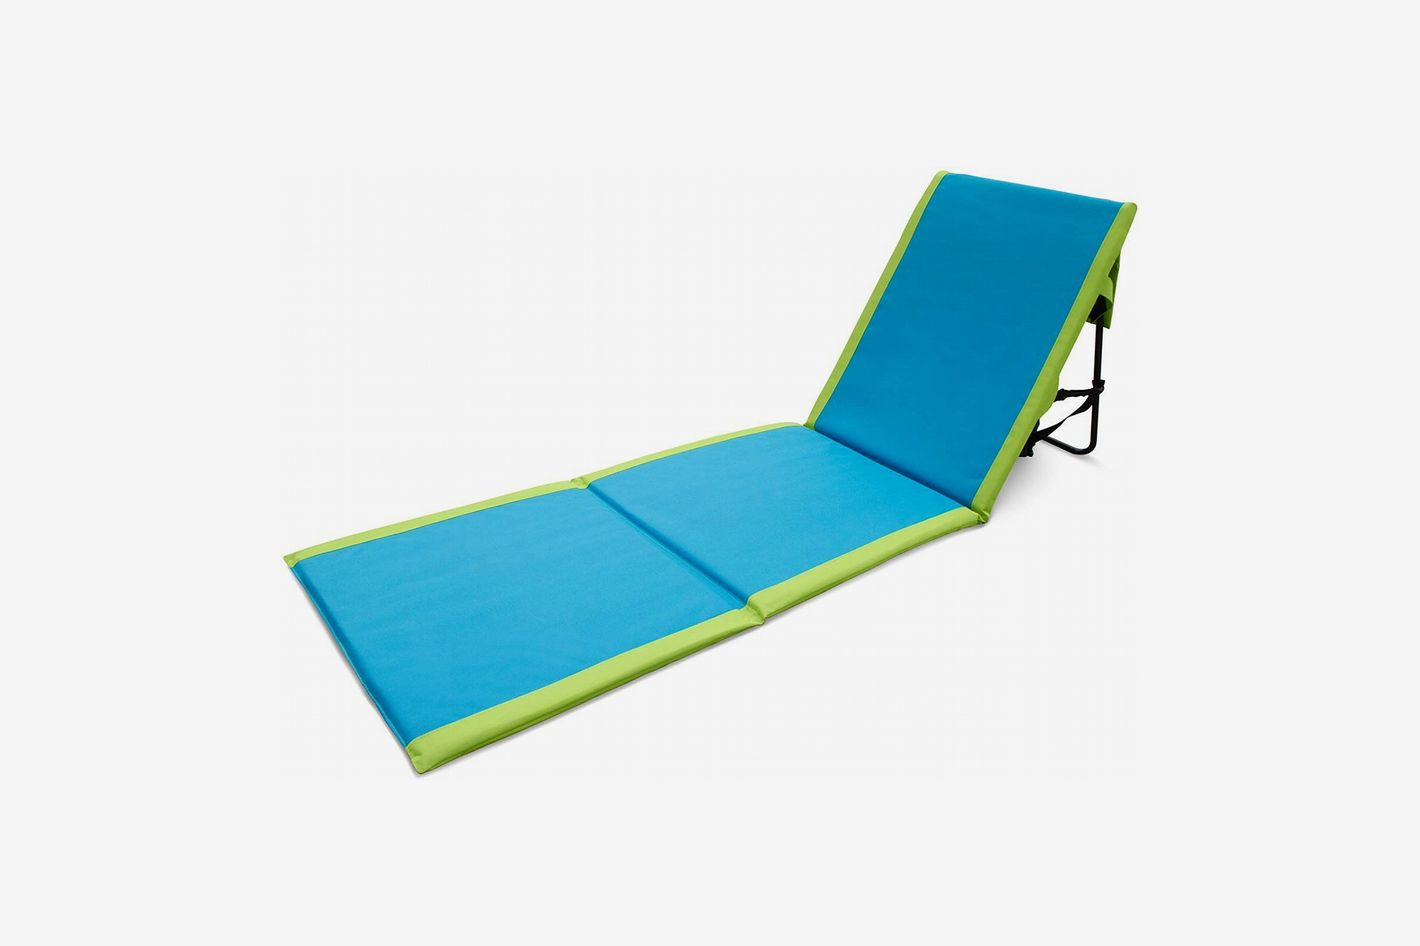 Astonishing 21 Best Beach Chairs 2019 The Strategist New York Magazine Cjindustries Chair Design For Home Cjindustriesco